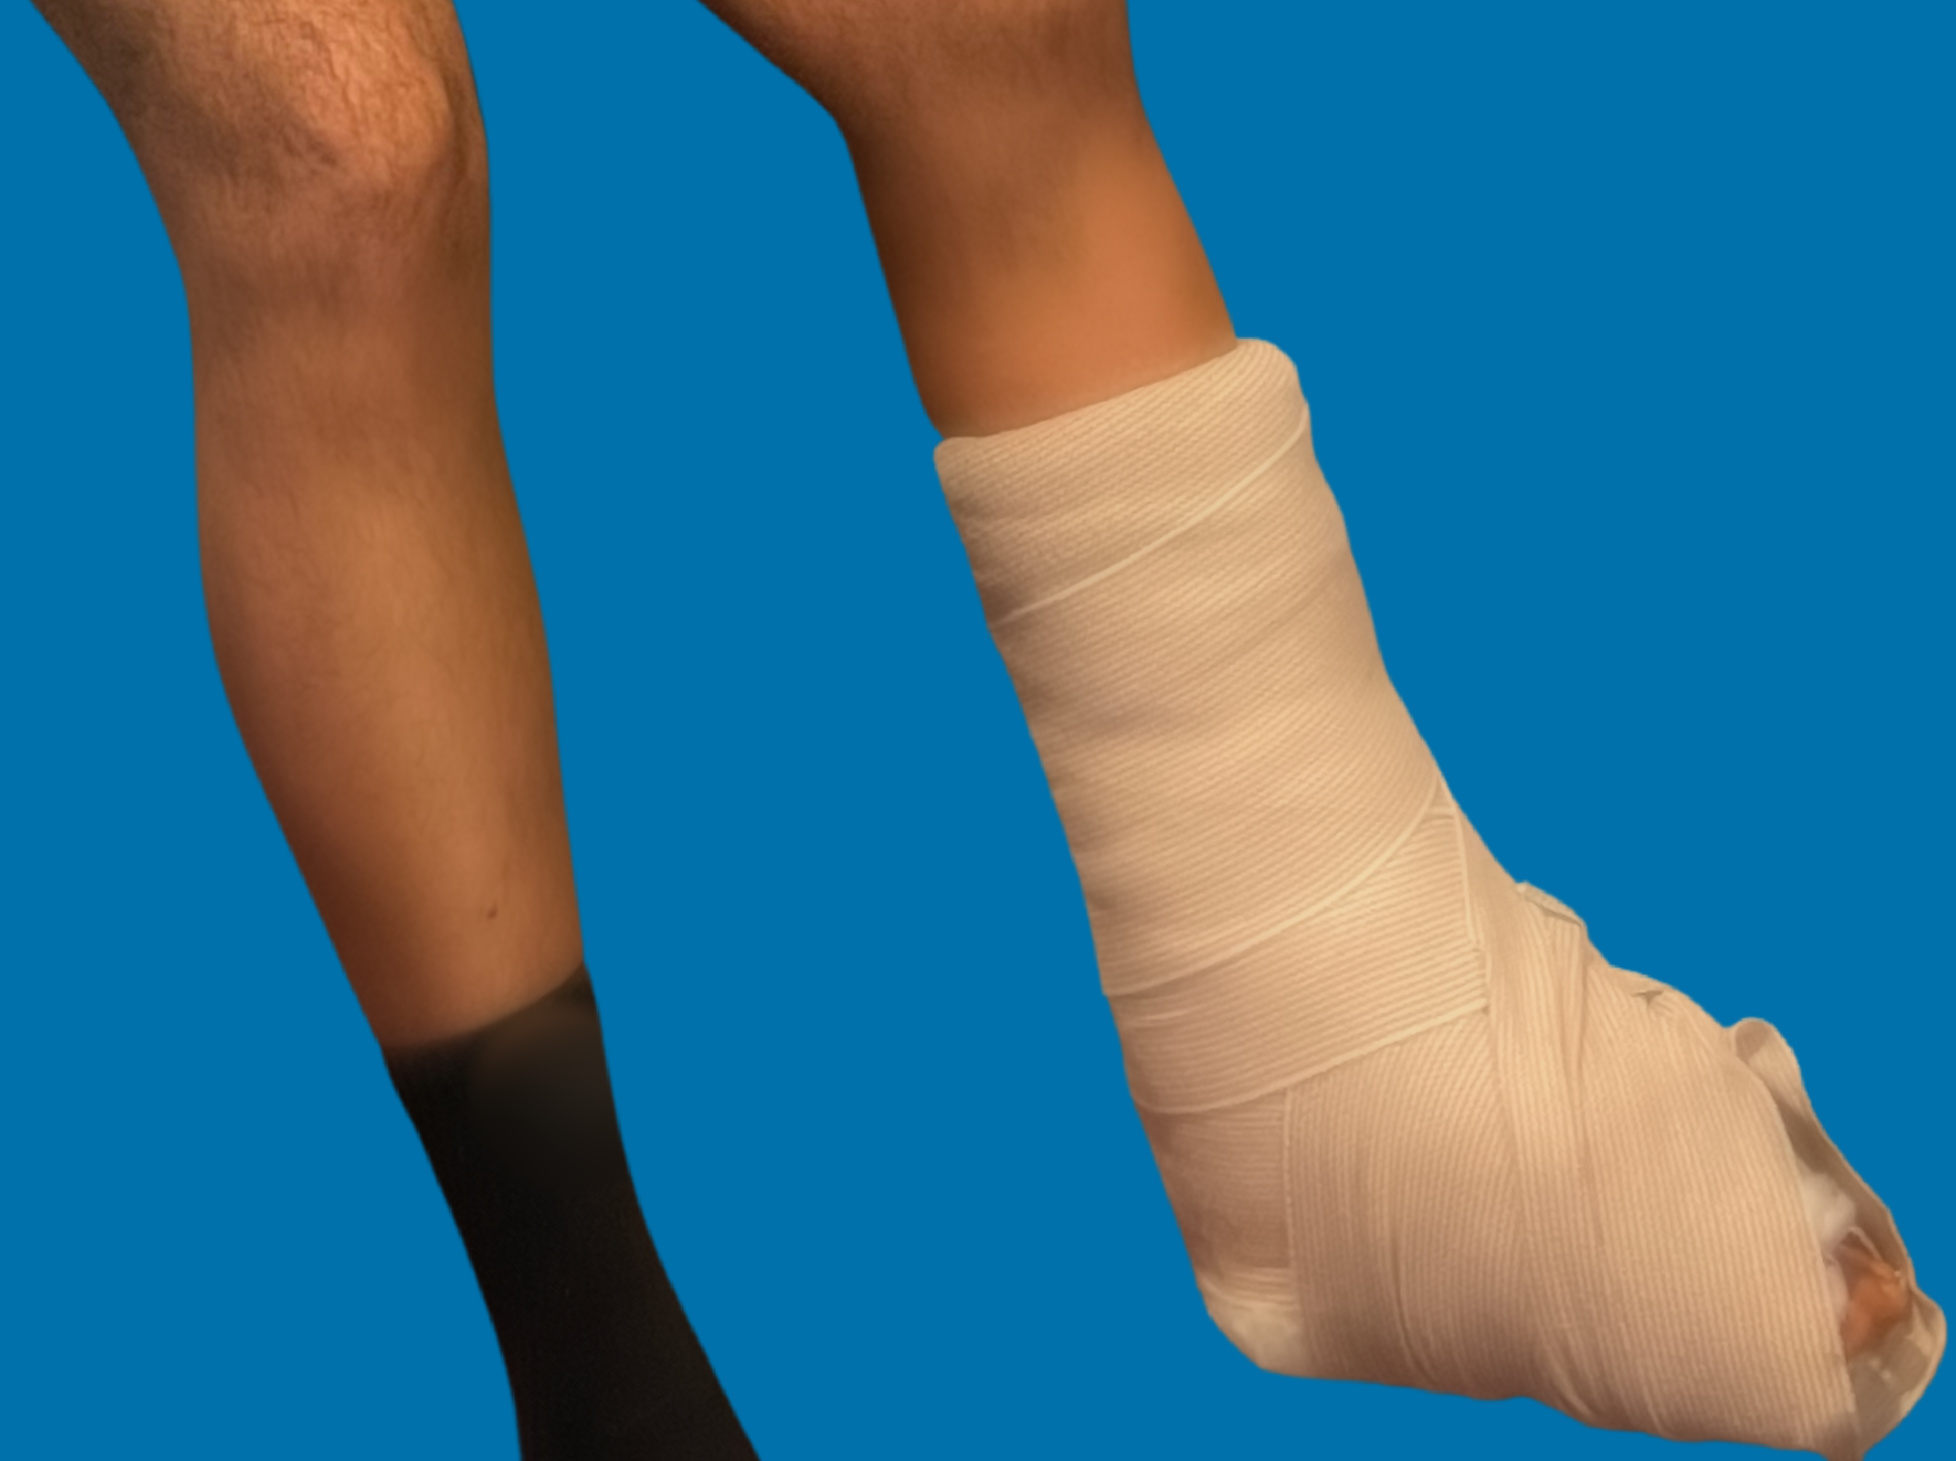 Should I get an injury lawyer of ankle surgery required?